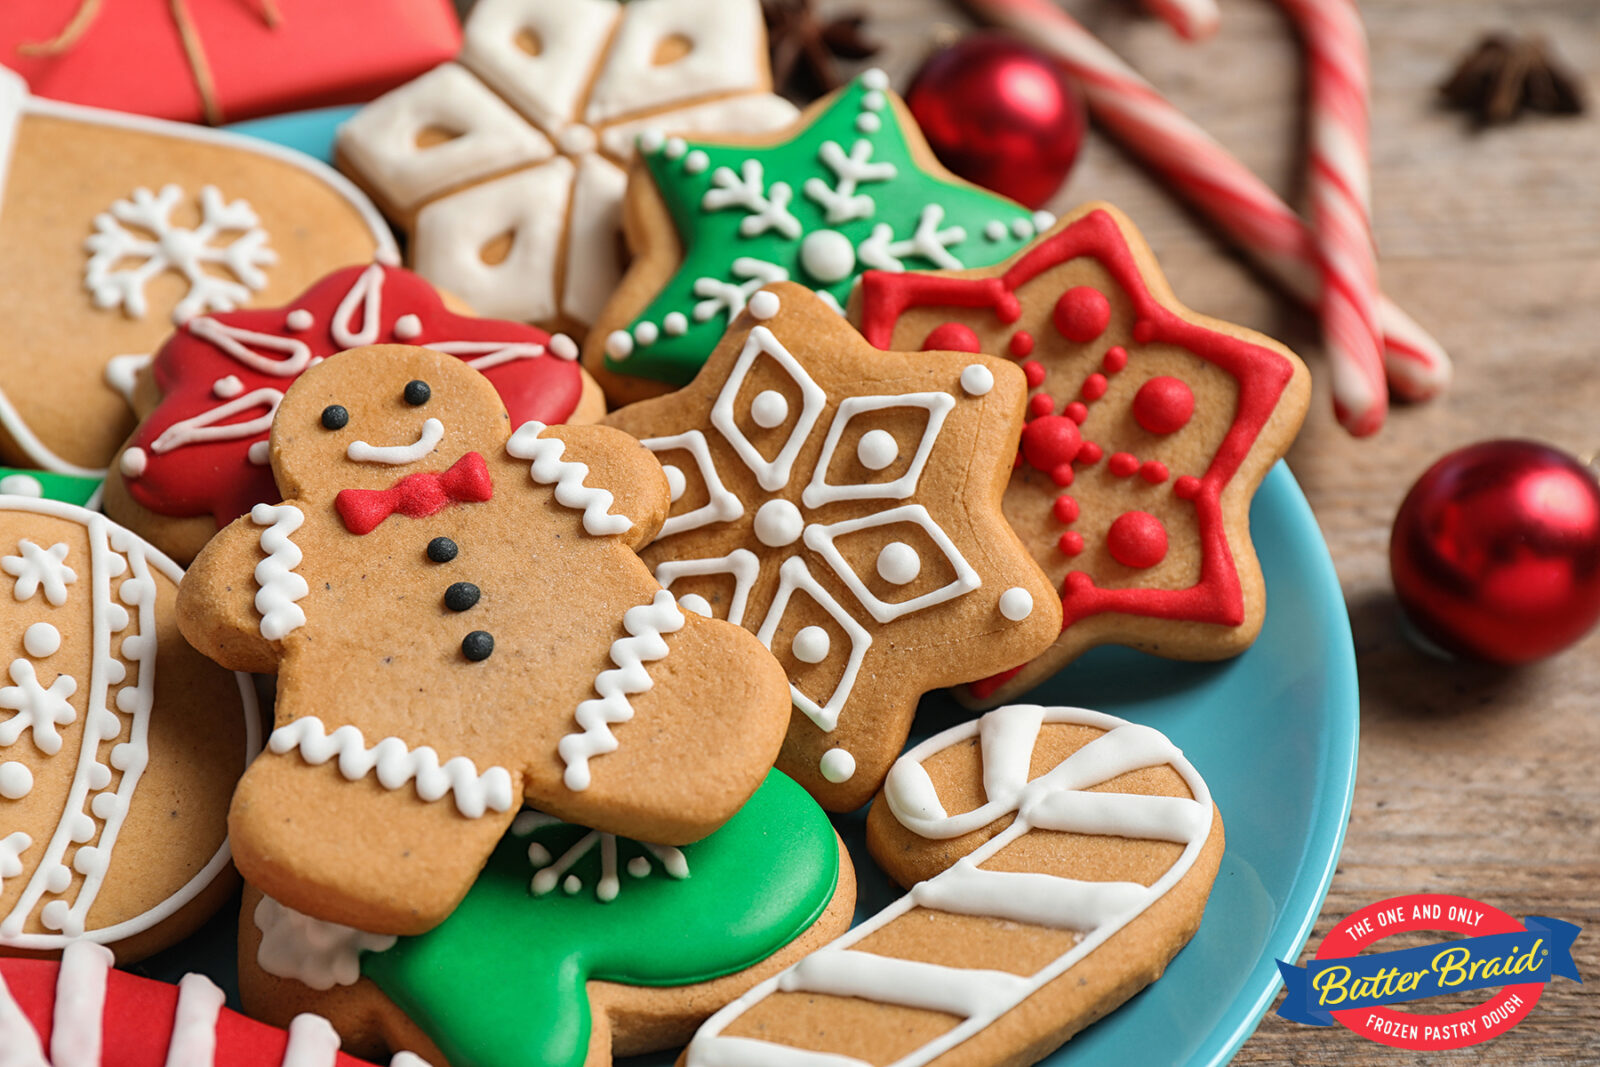 Top 5 Christmas Goodies We Look Forward to Every Year